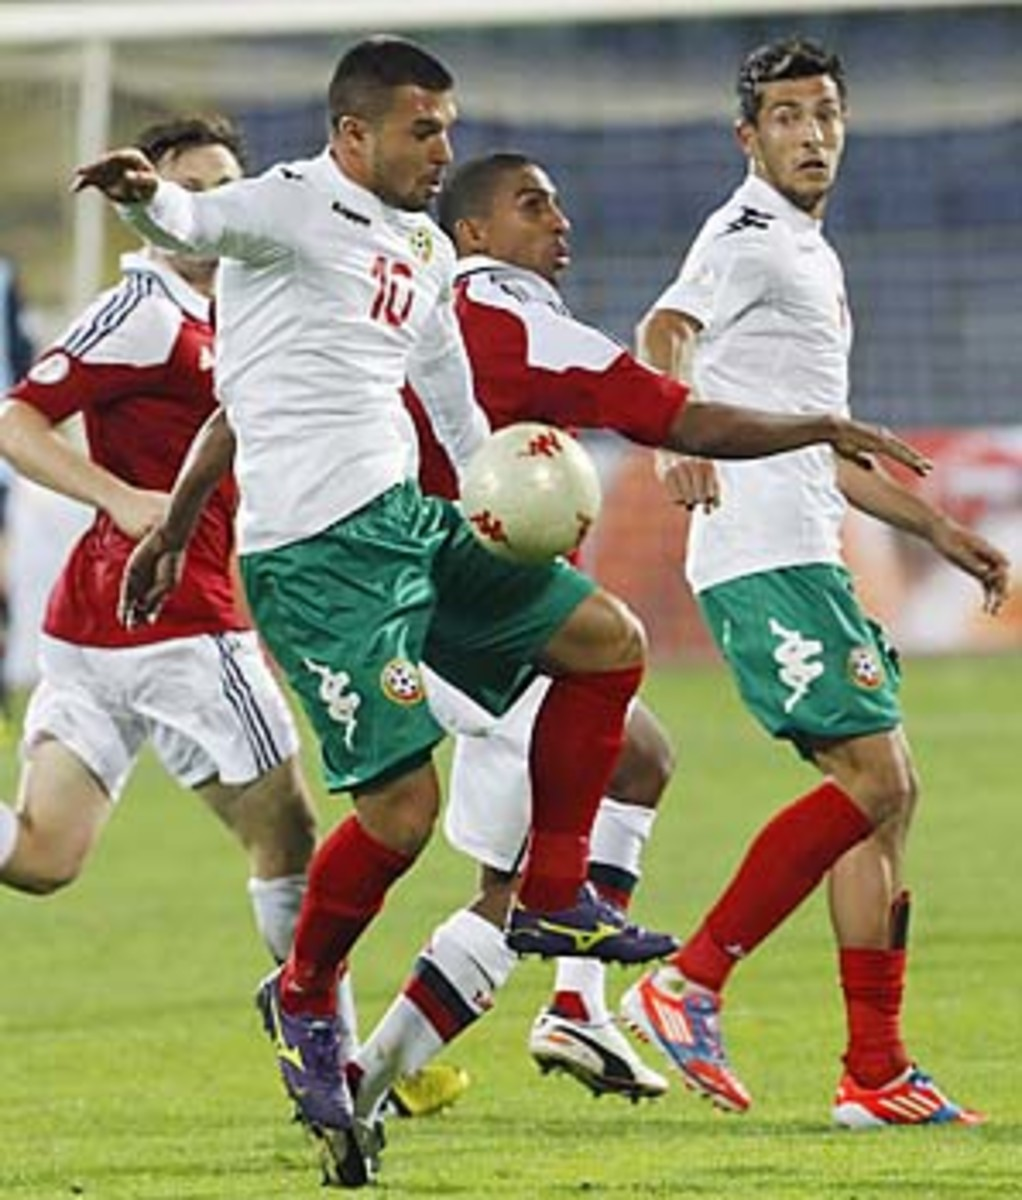 Patrick Mtiliga (center, in red) of Denmark was the subject of monkey chants by Bulgaria fans in October.